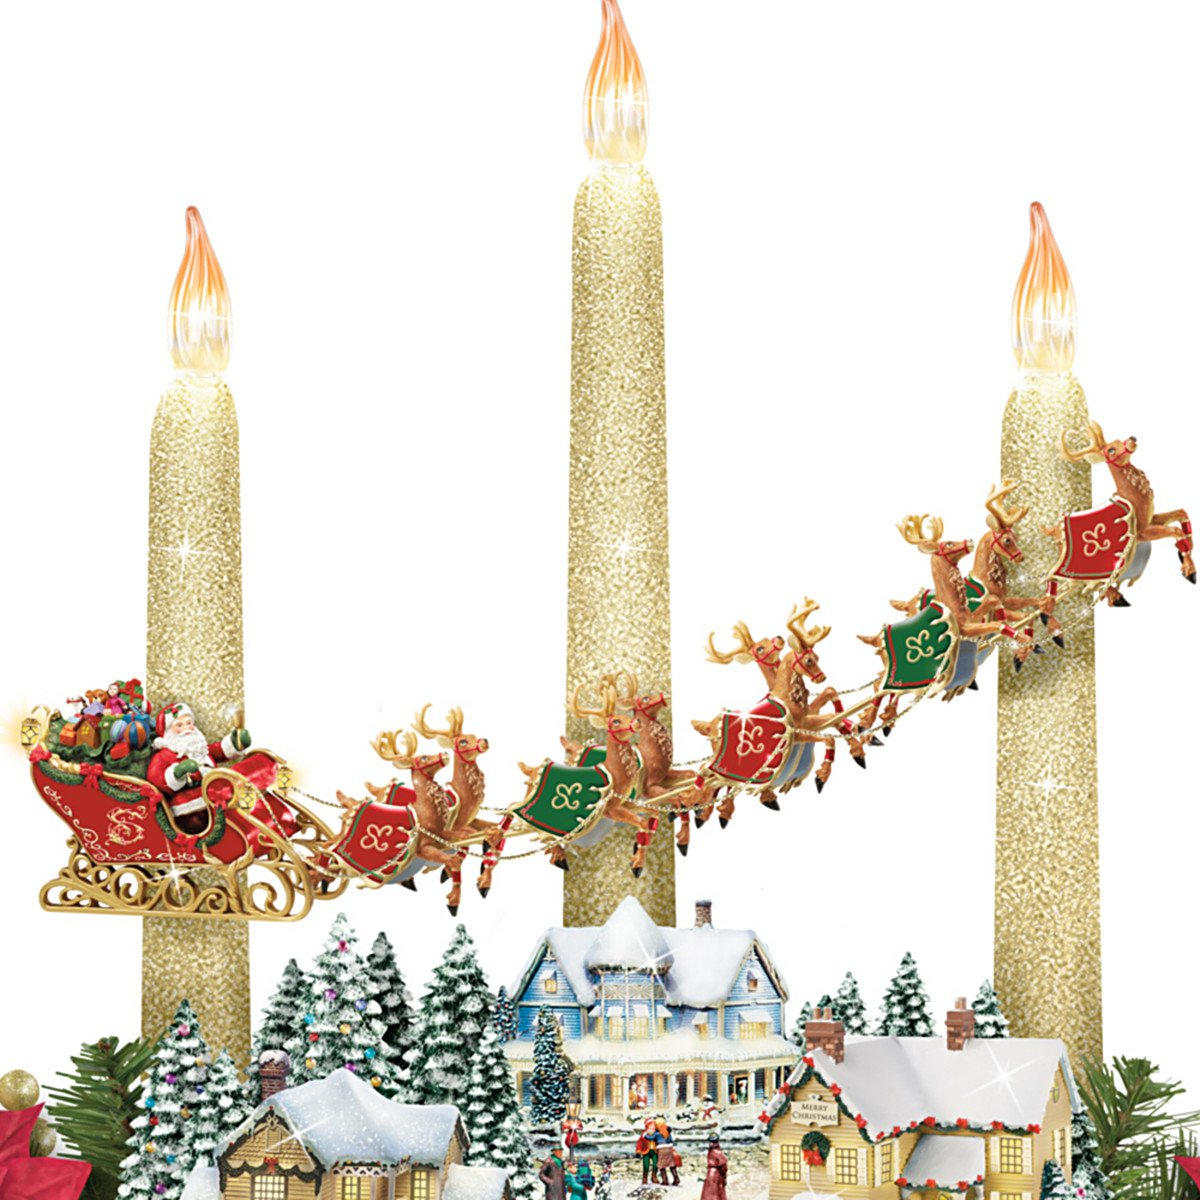 Thomas Kinkade The Lights Of Christmas Illuminating Village Table Centerpiece - Close up of Santa and his Sled